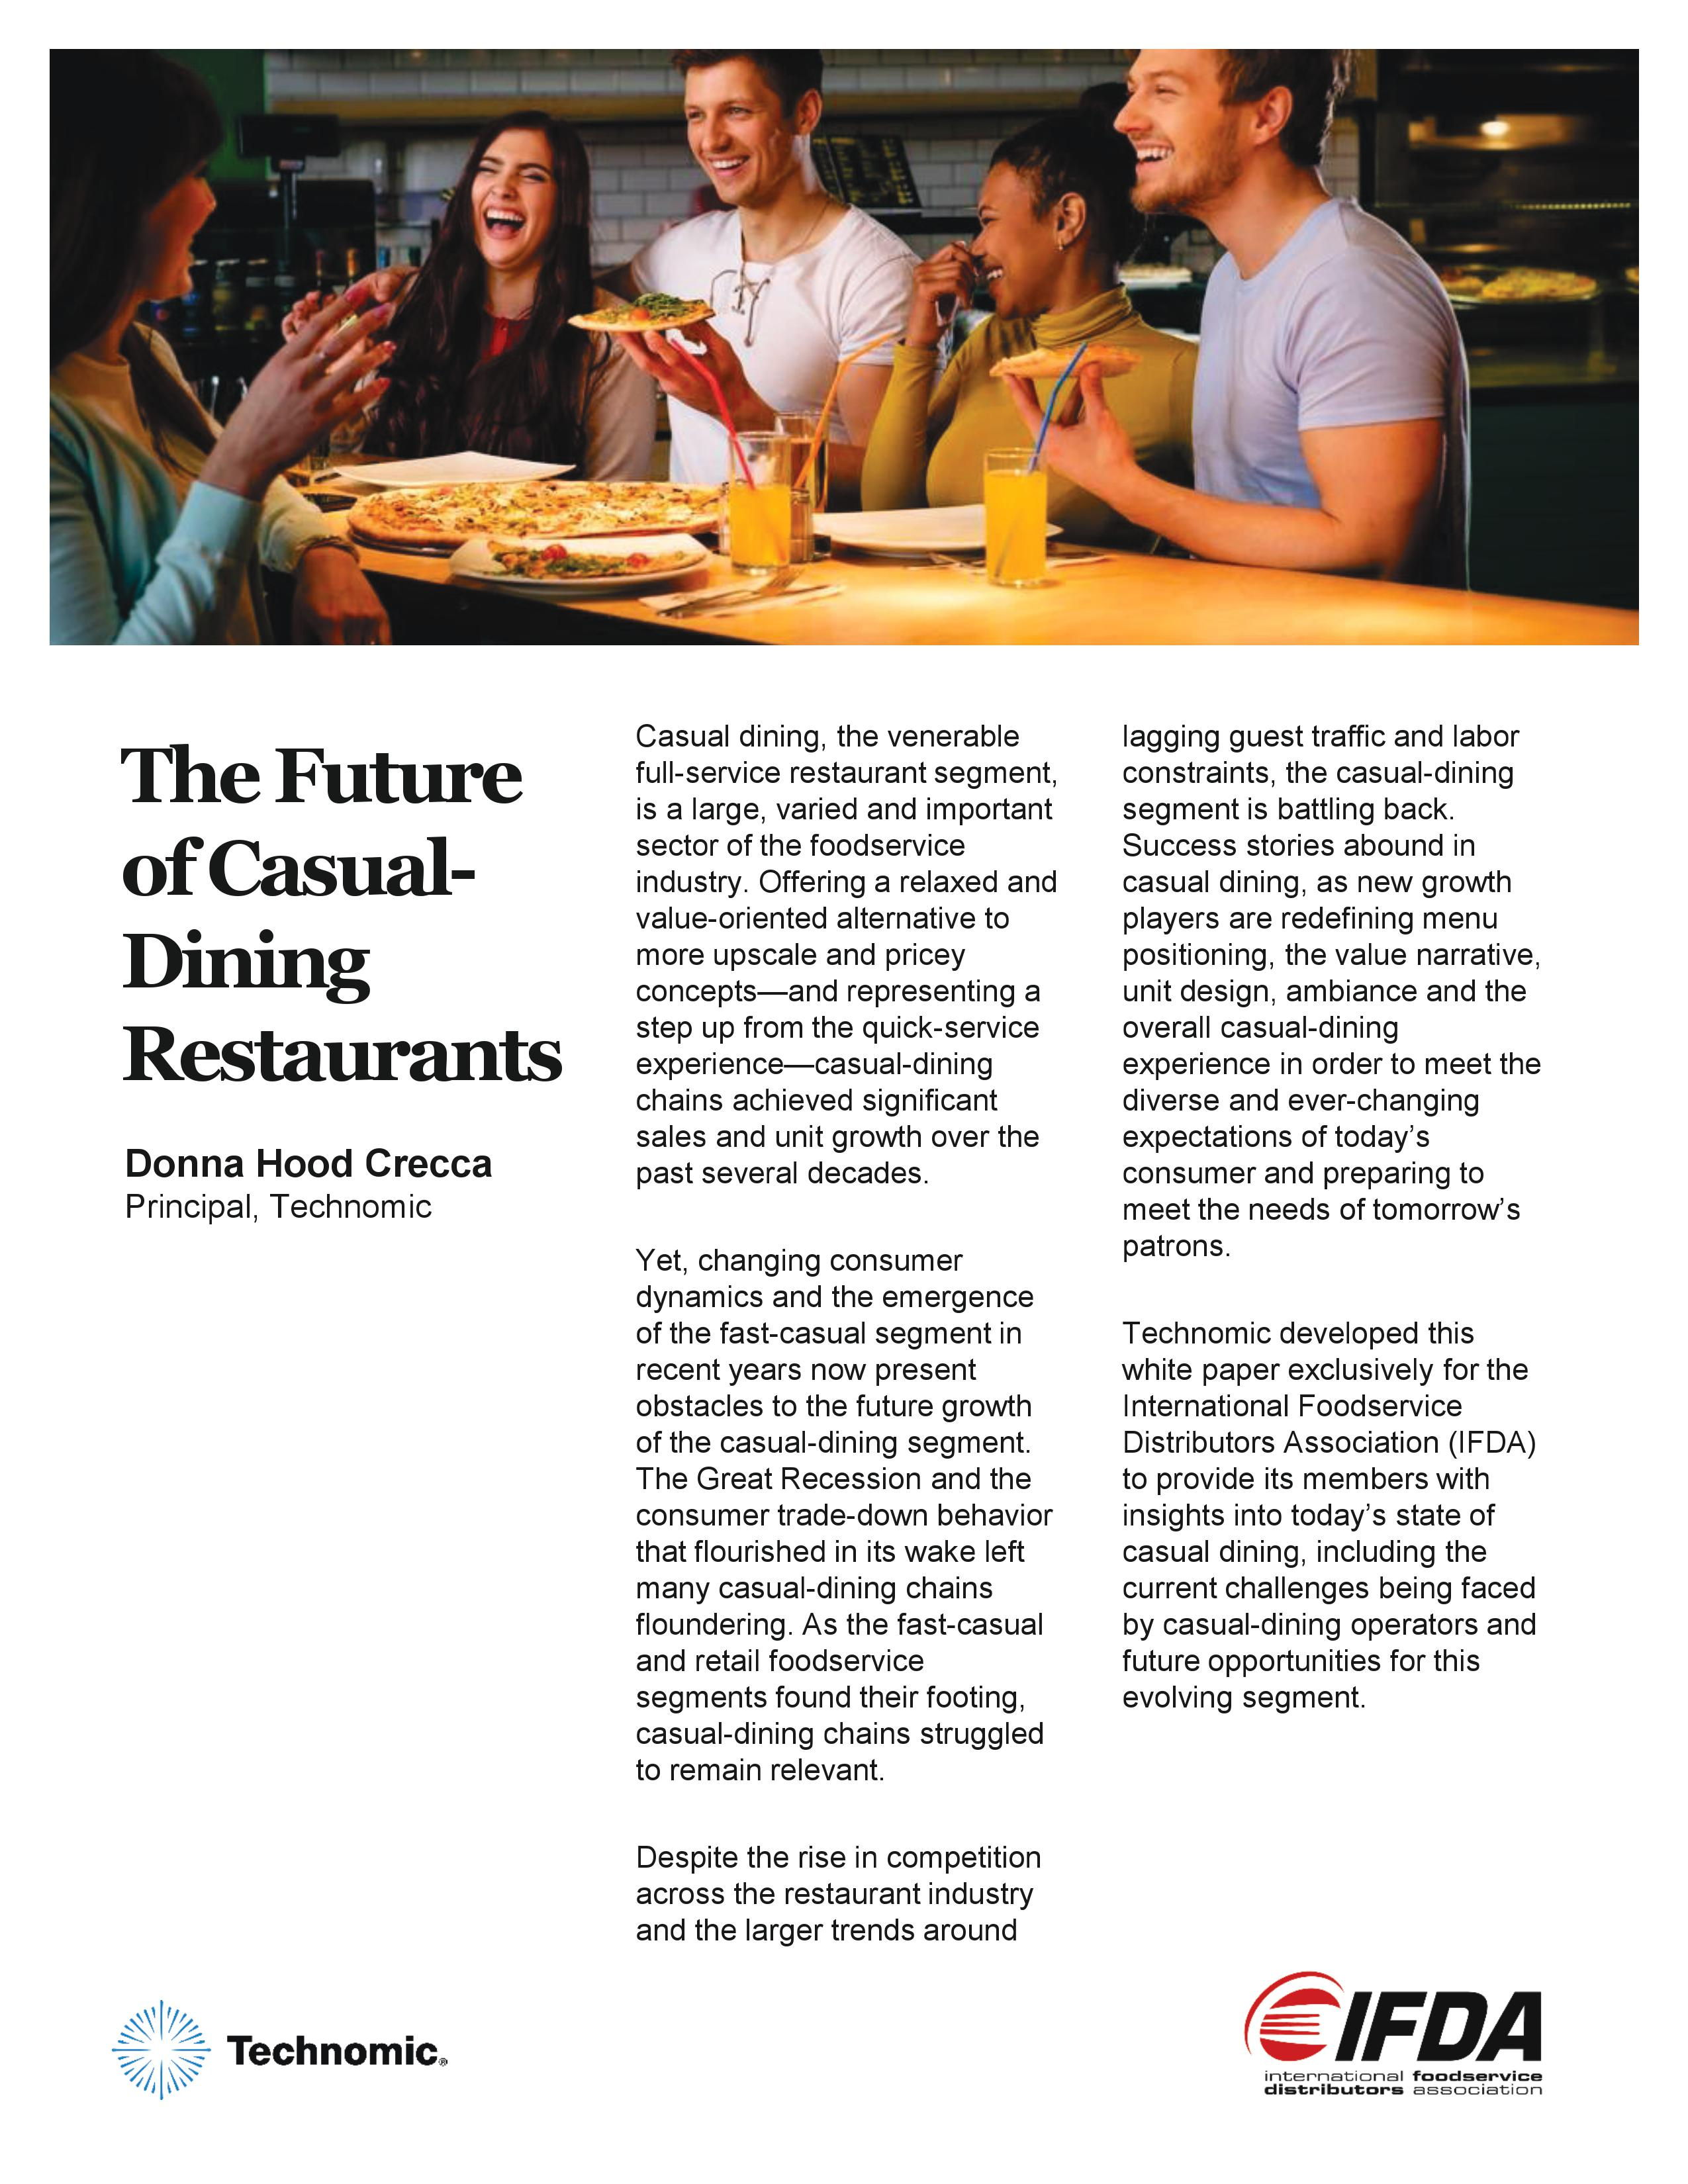 Thumbnail of The Future of Casual Dining Restaurants